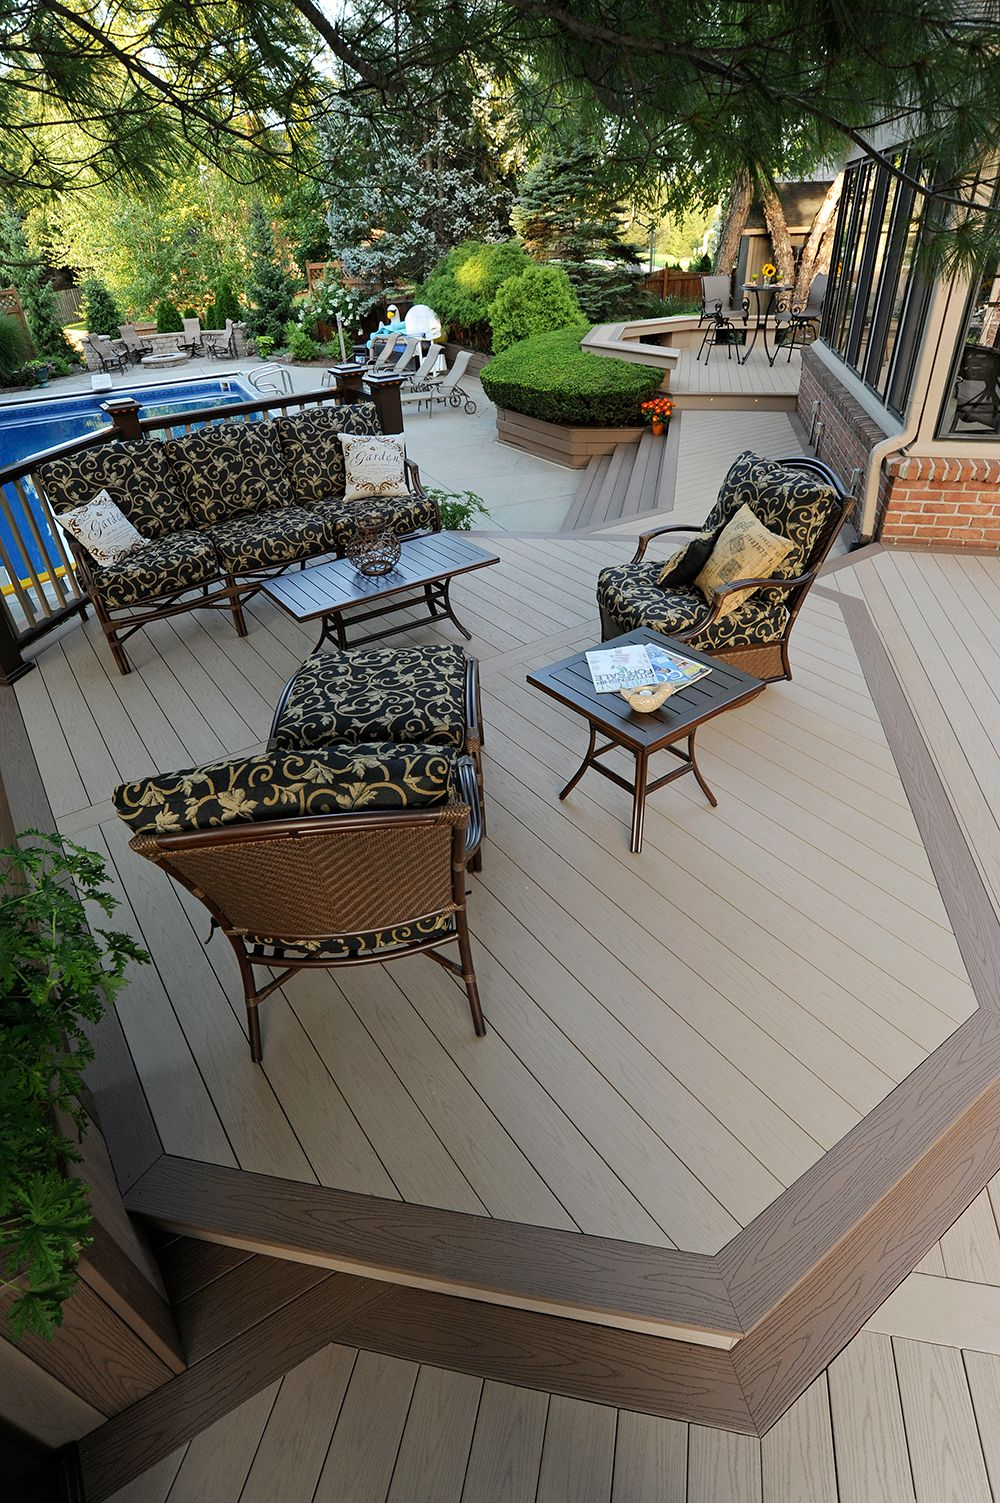 Deck Board Accent Idea | Trim The Borders Of Your Deck, As Well As The